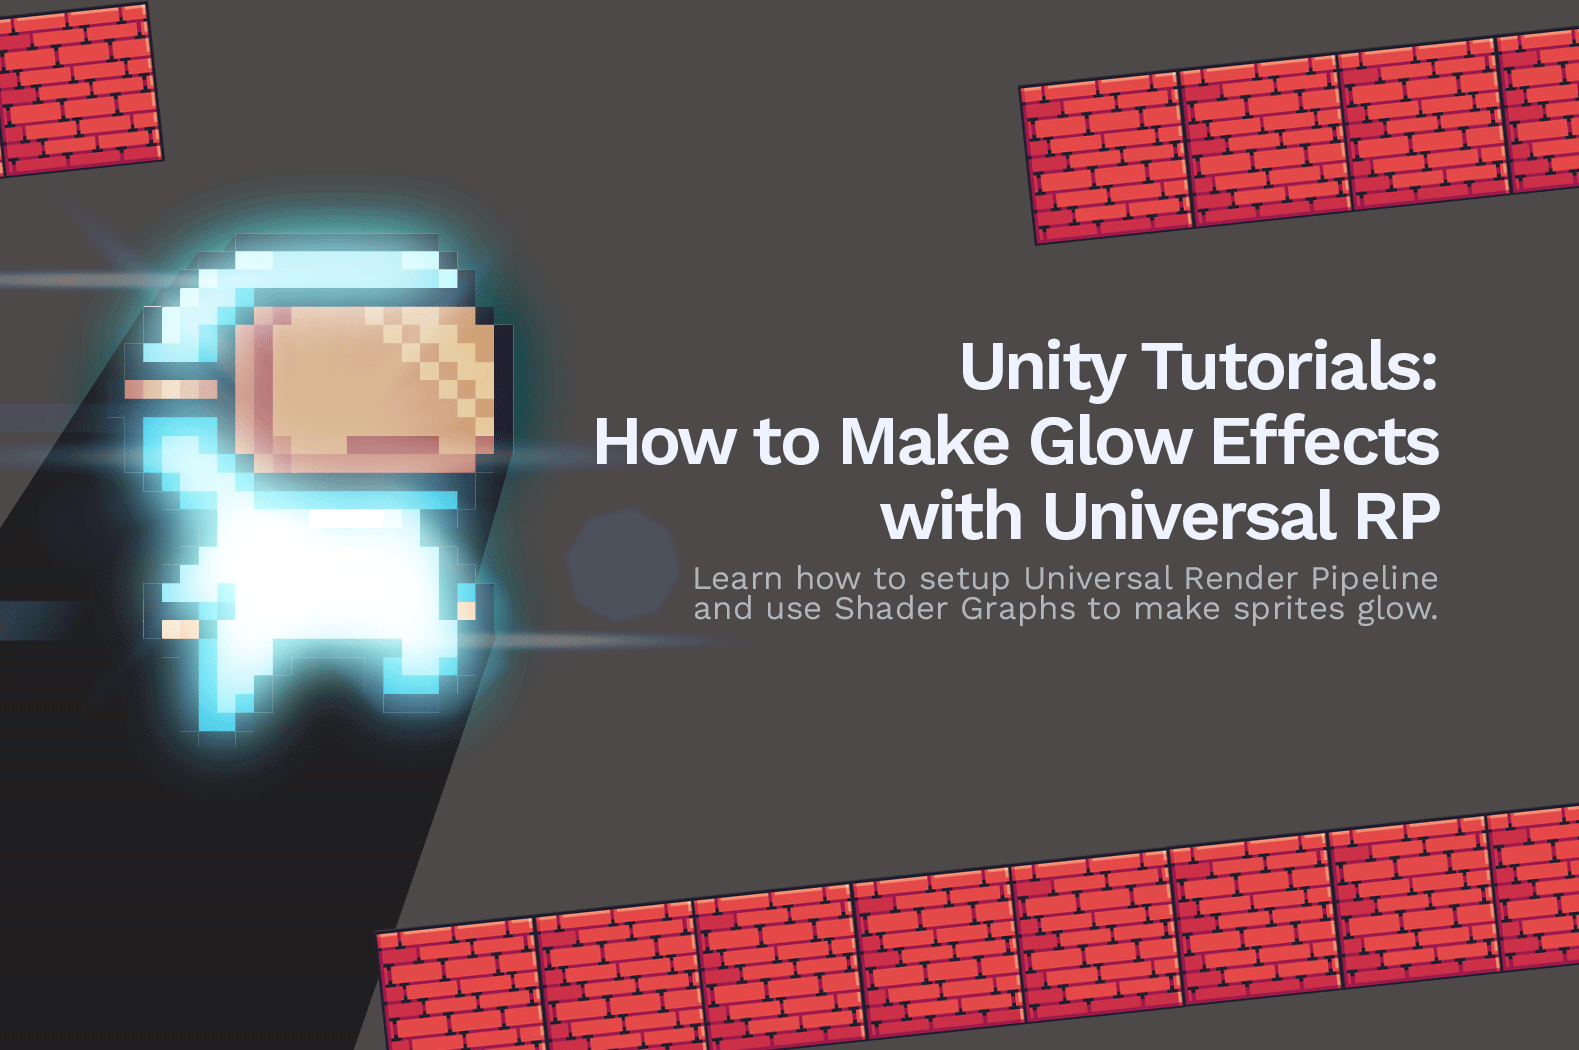 Unity Tutorials: How to Make Glow Effects in 2D